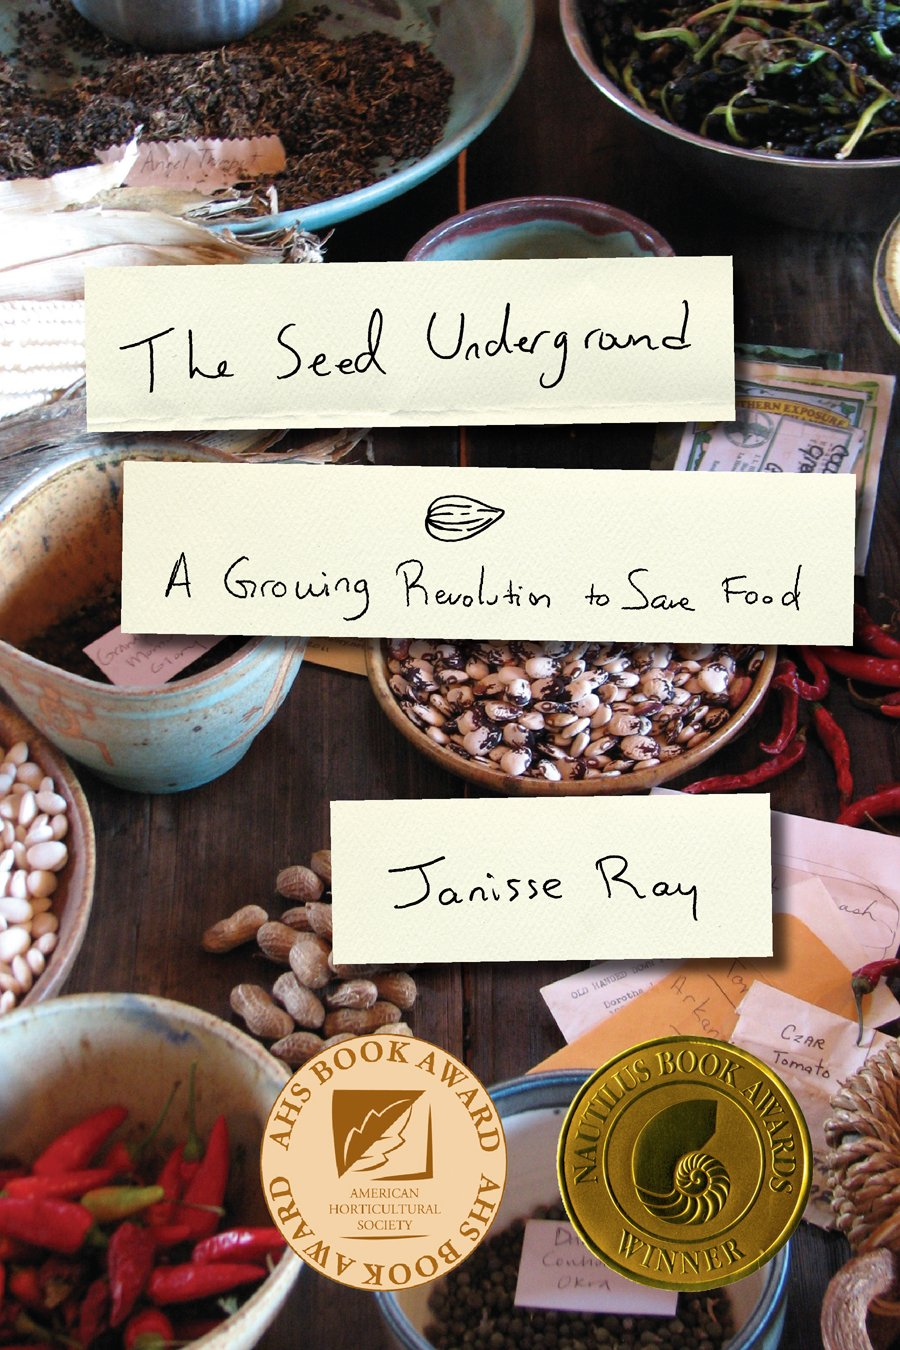 The Seed Underground: A Growing Revolution to Save Food by Chelsea Green Publishing